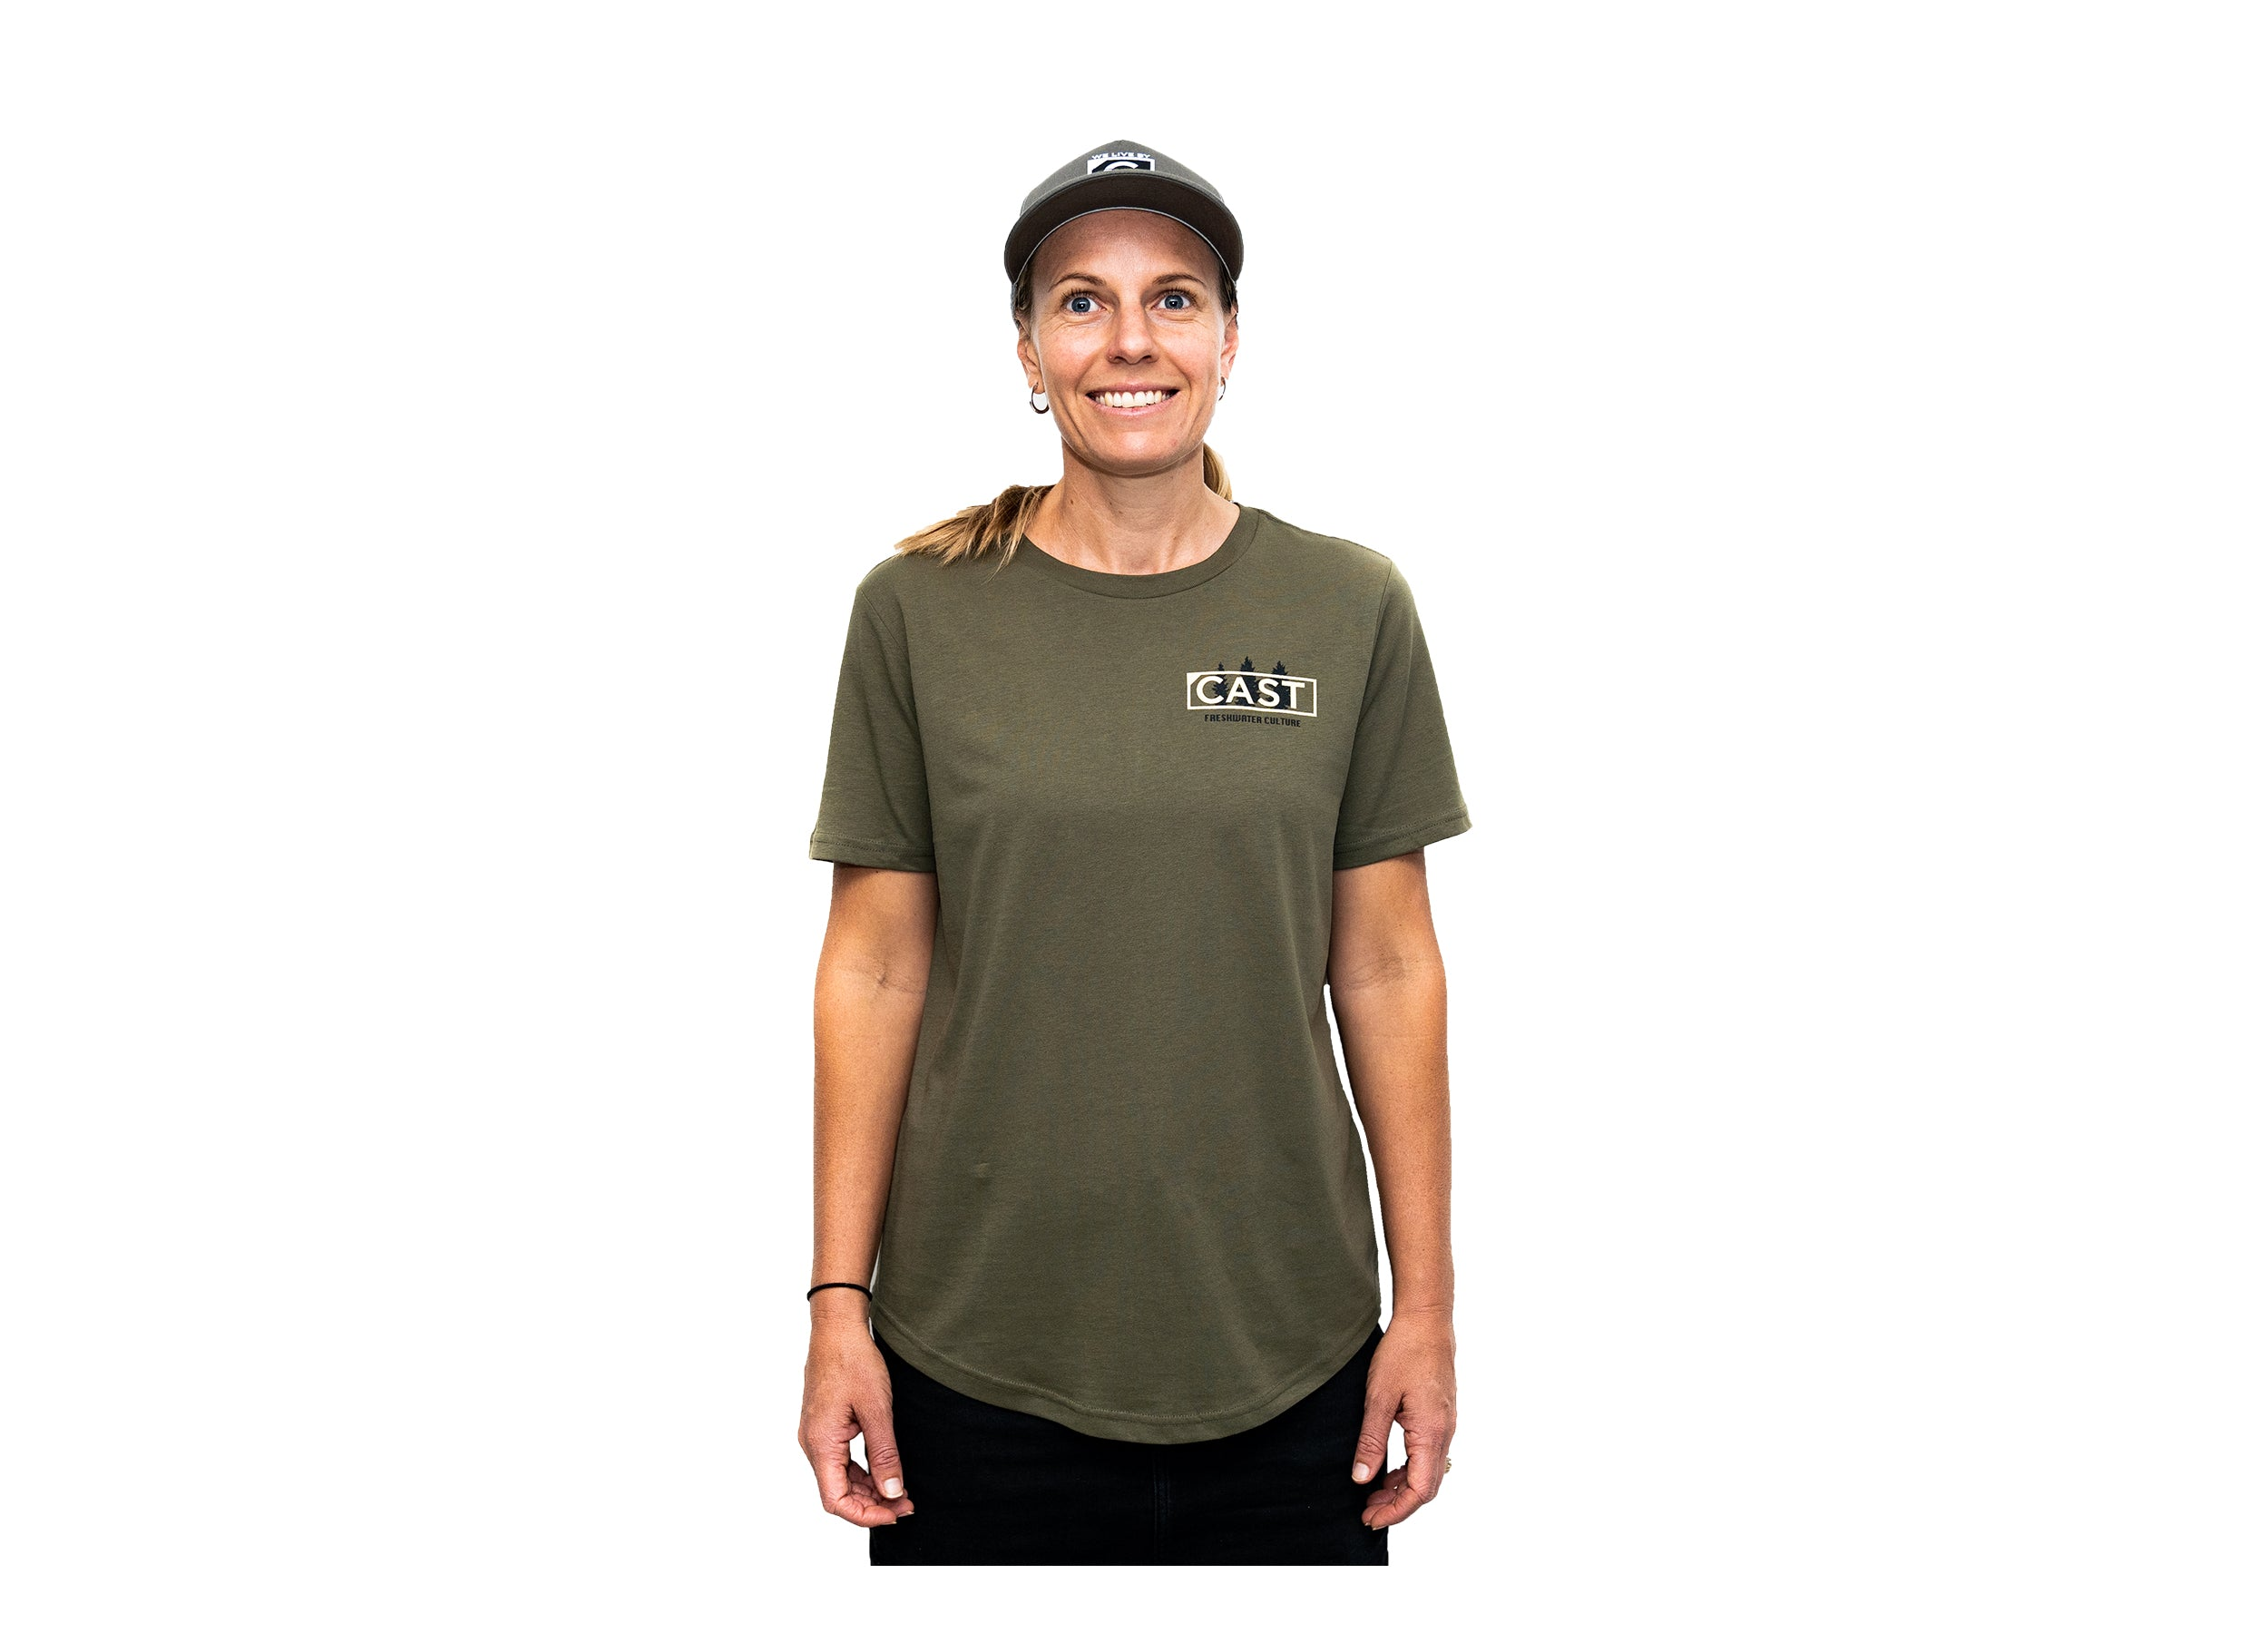 Cast Mag Co Women's Cotton Tee - Freshwater Culture